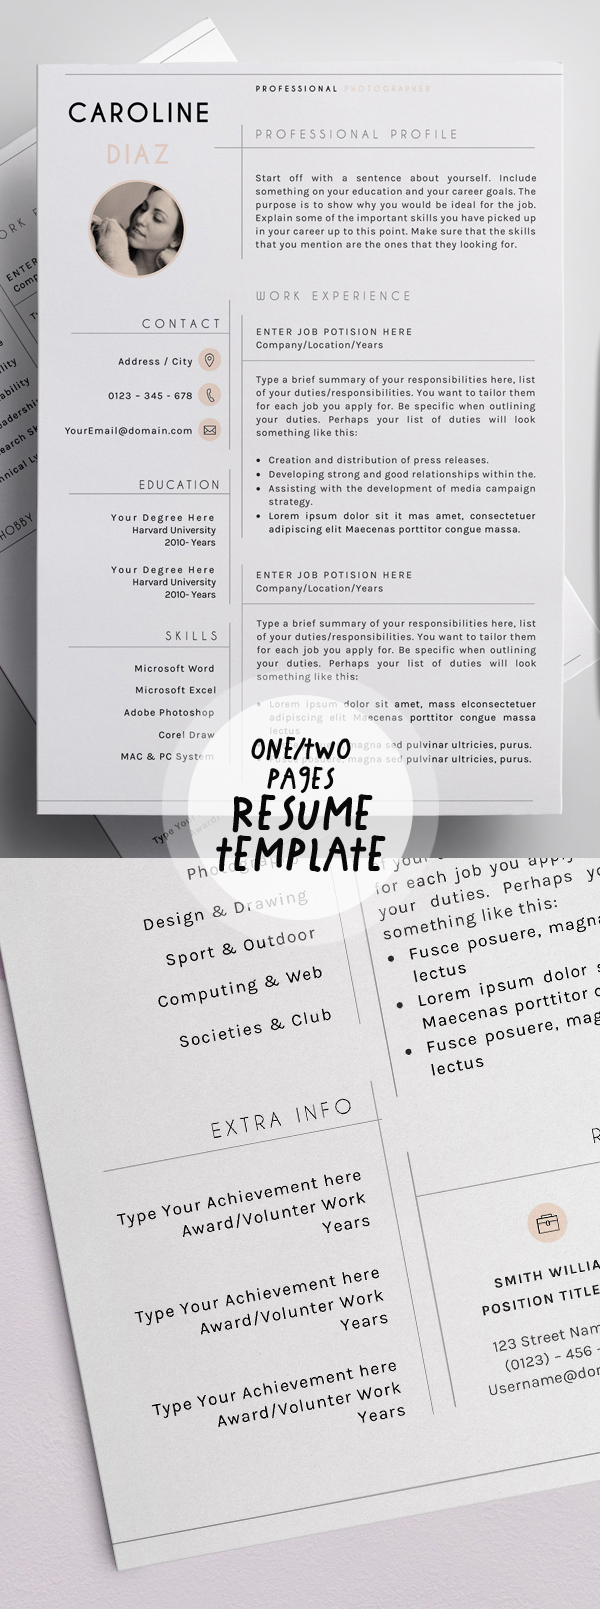 50 best resume templates for 2018 43 - Resume Templates 2018